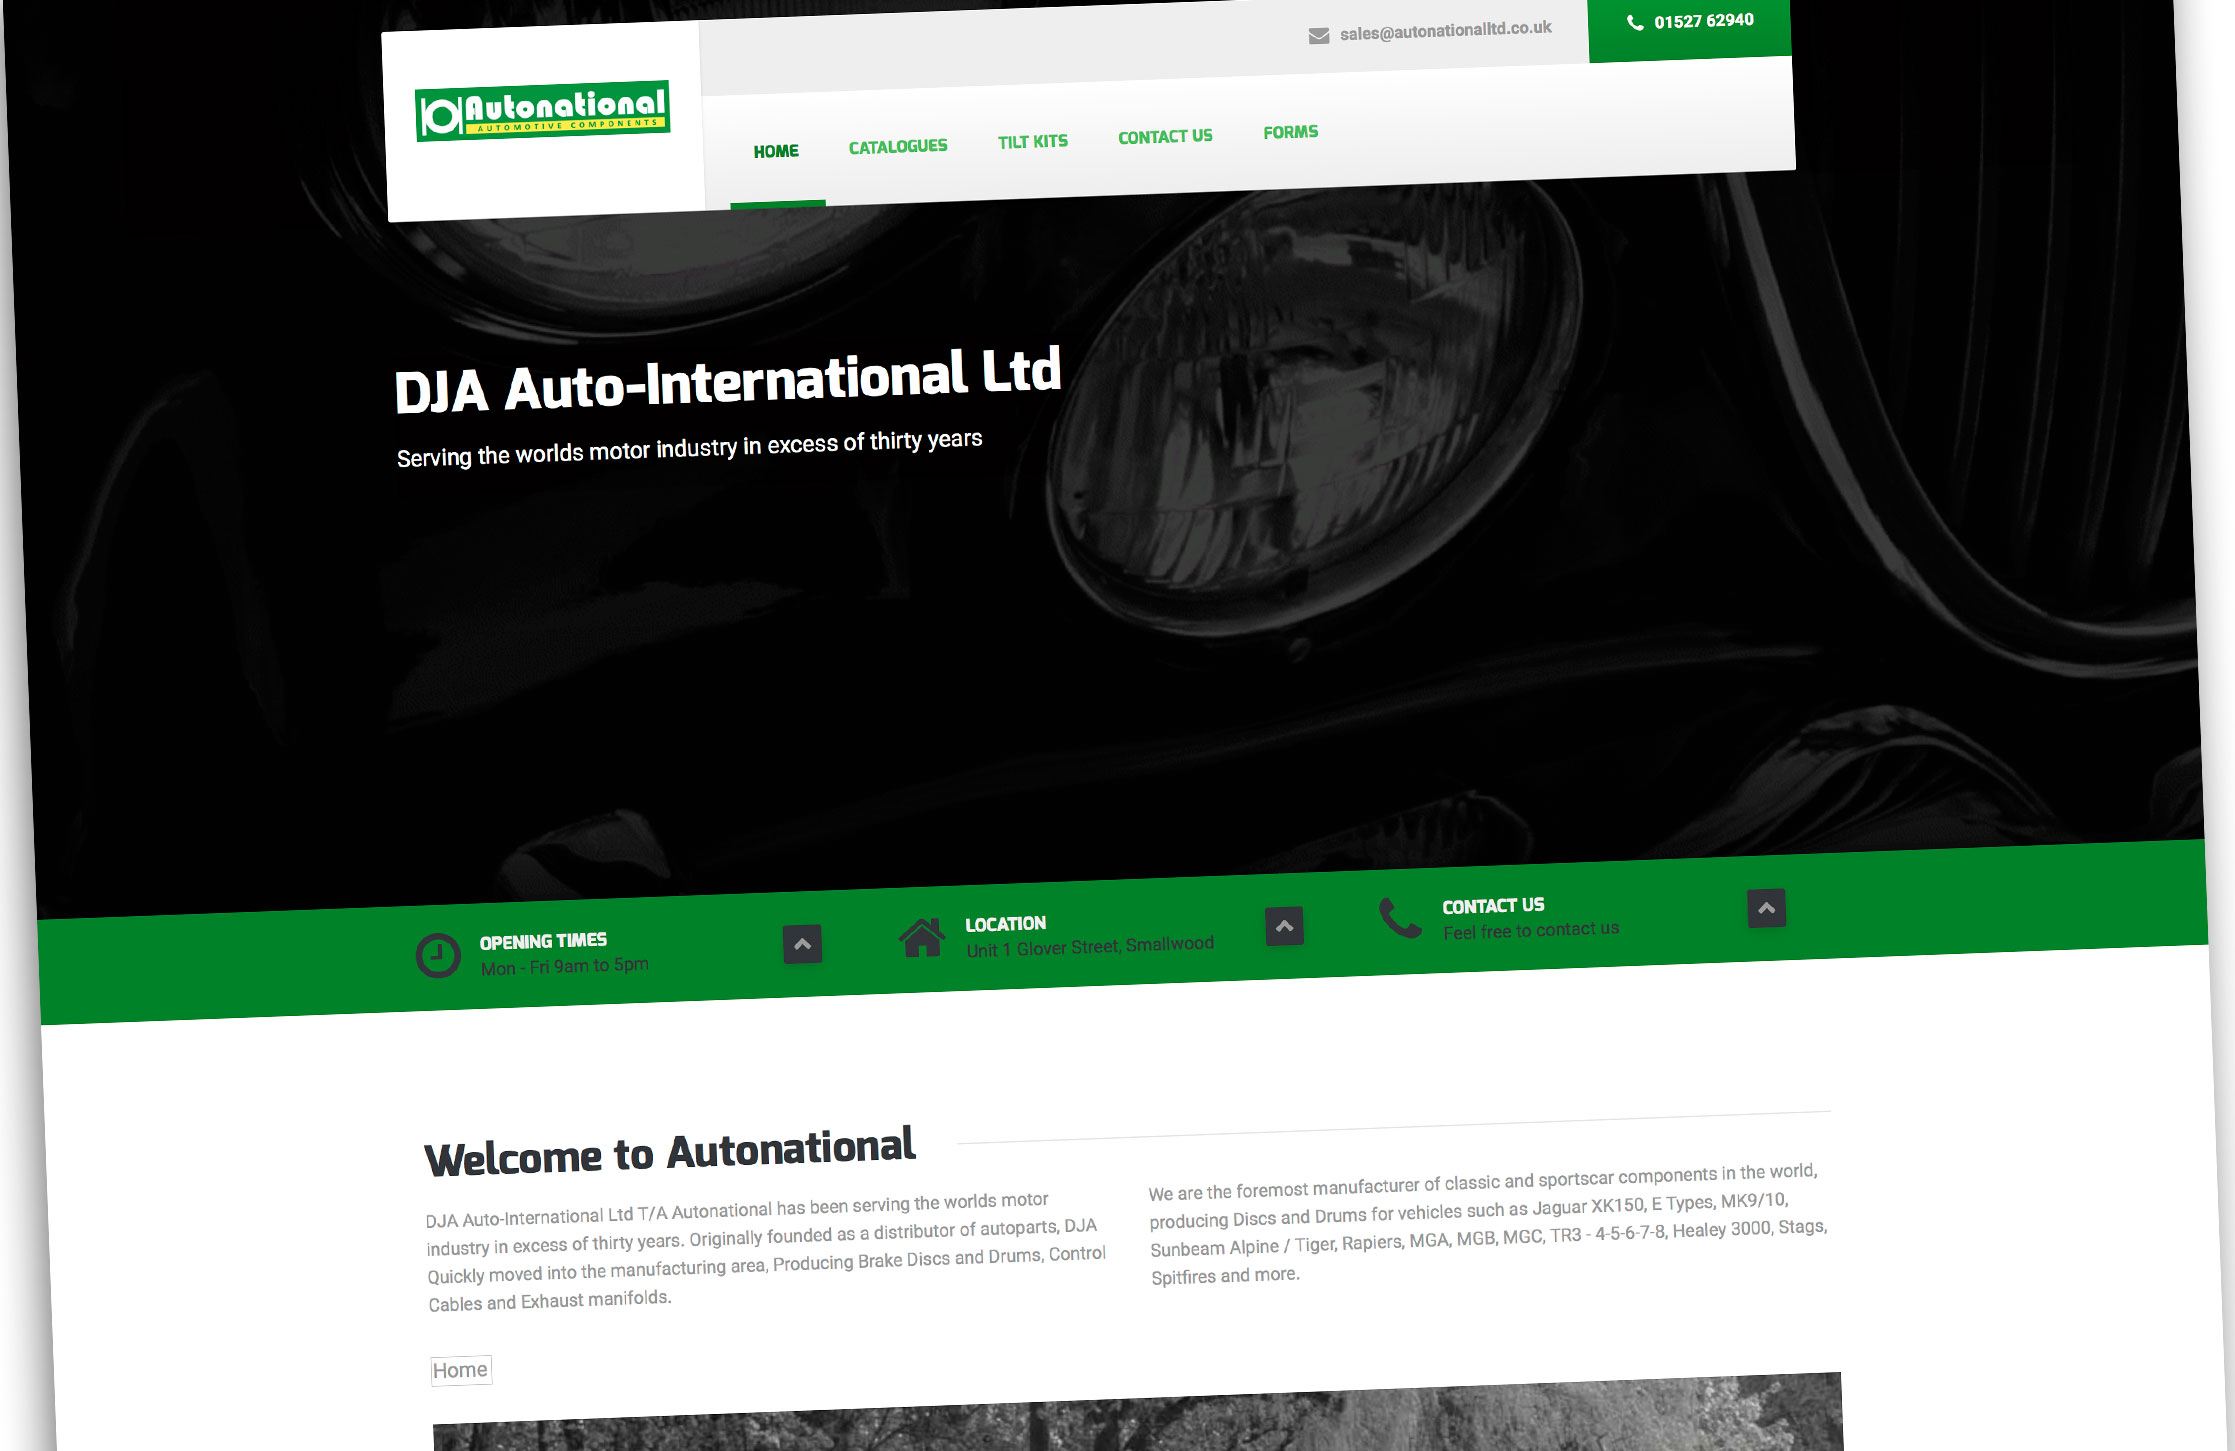 Autonational Motorparts Website